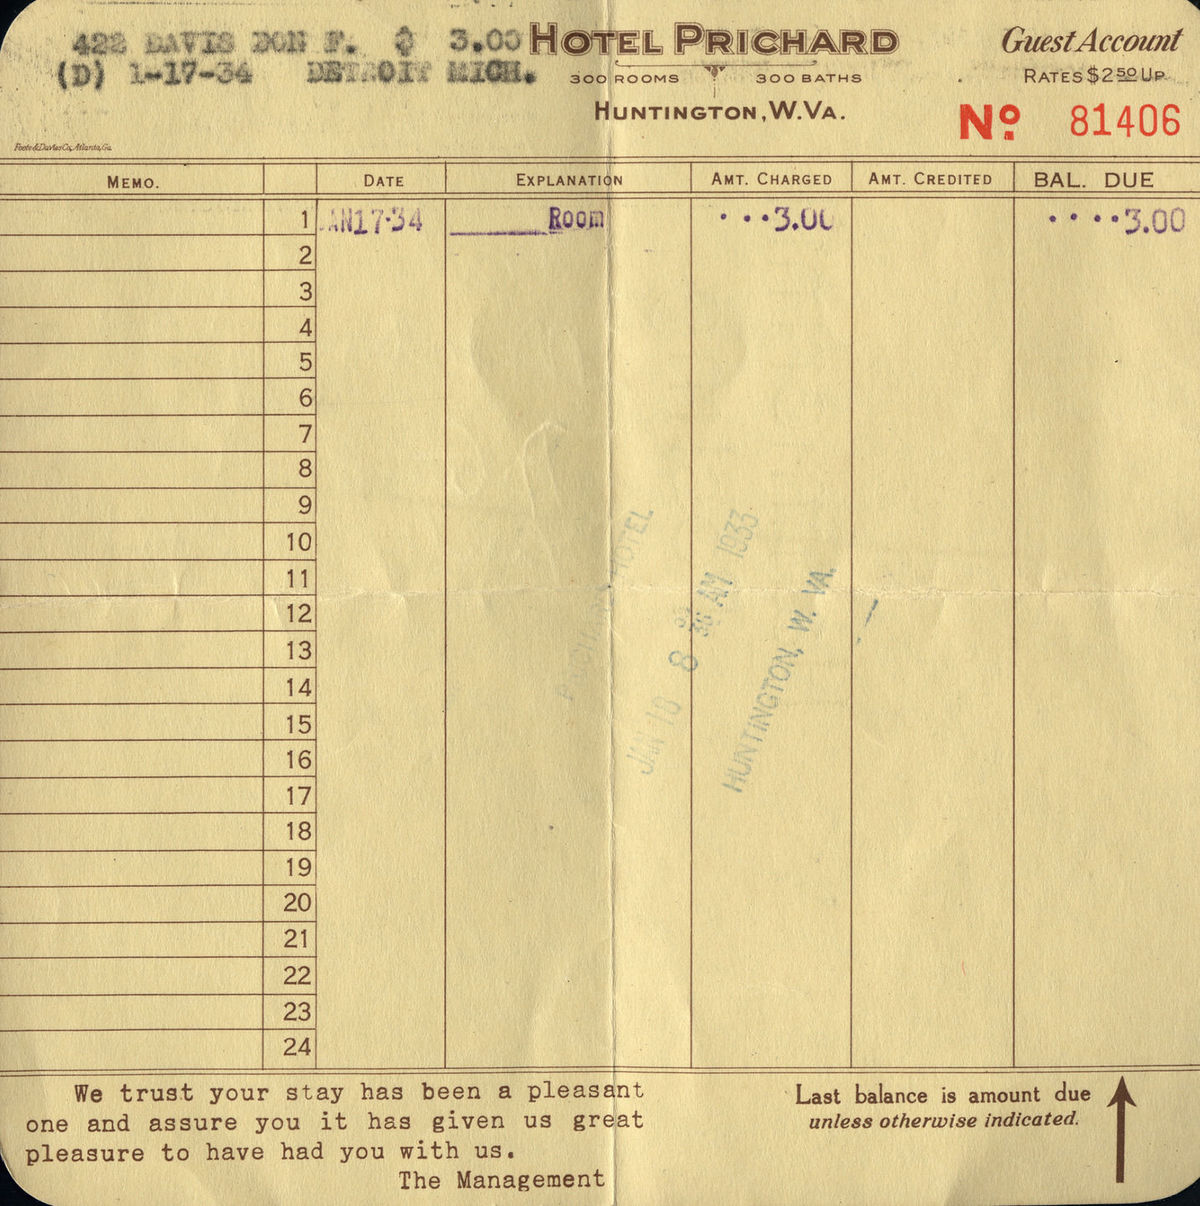 A receipt from 1934.